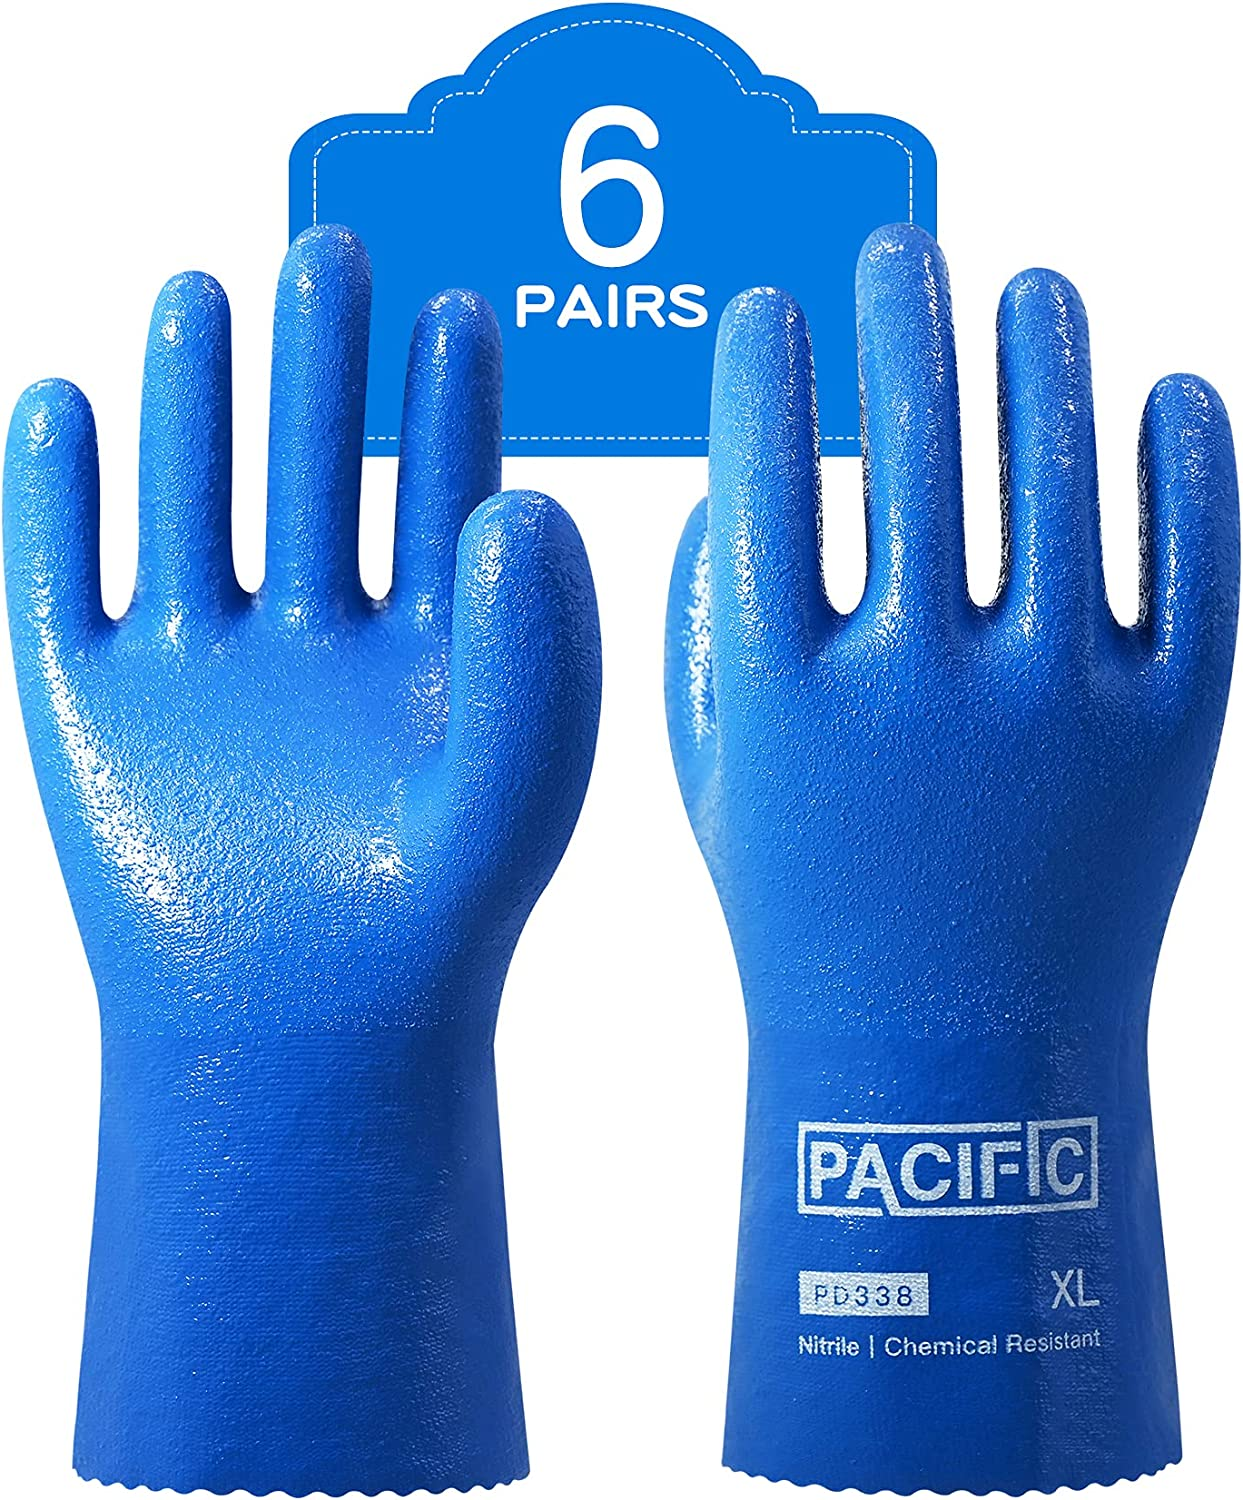 PACIFIC PPE 6 Pairs Japan Maker New Nitrile Heav Resistant 100% quality warranty Chemical Gloves Work